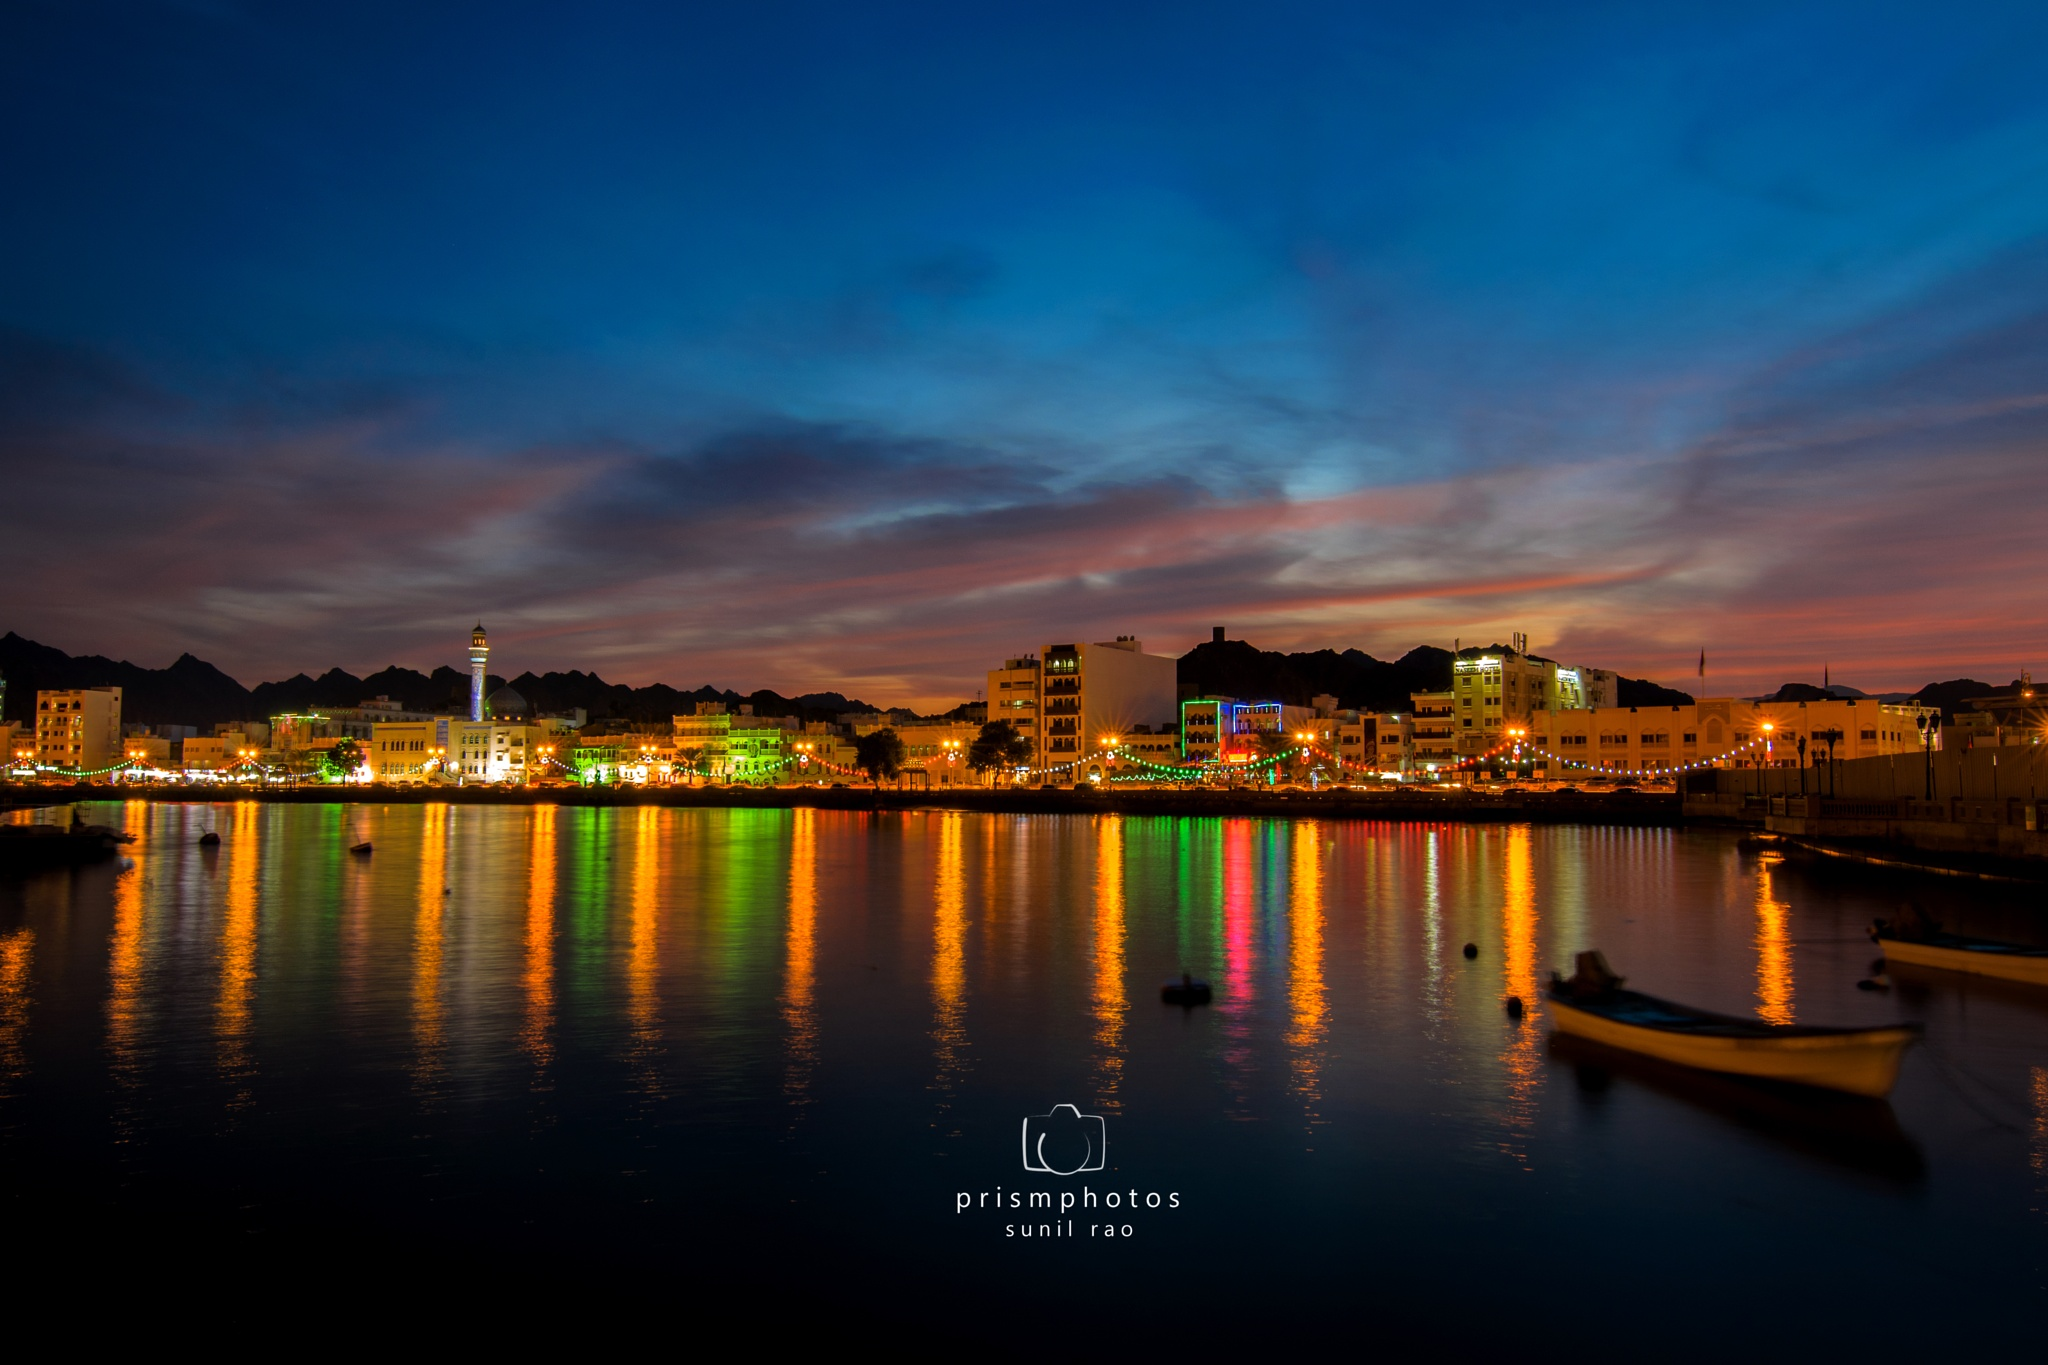 NIGHT SETS IN by prismphotos - sunil rao